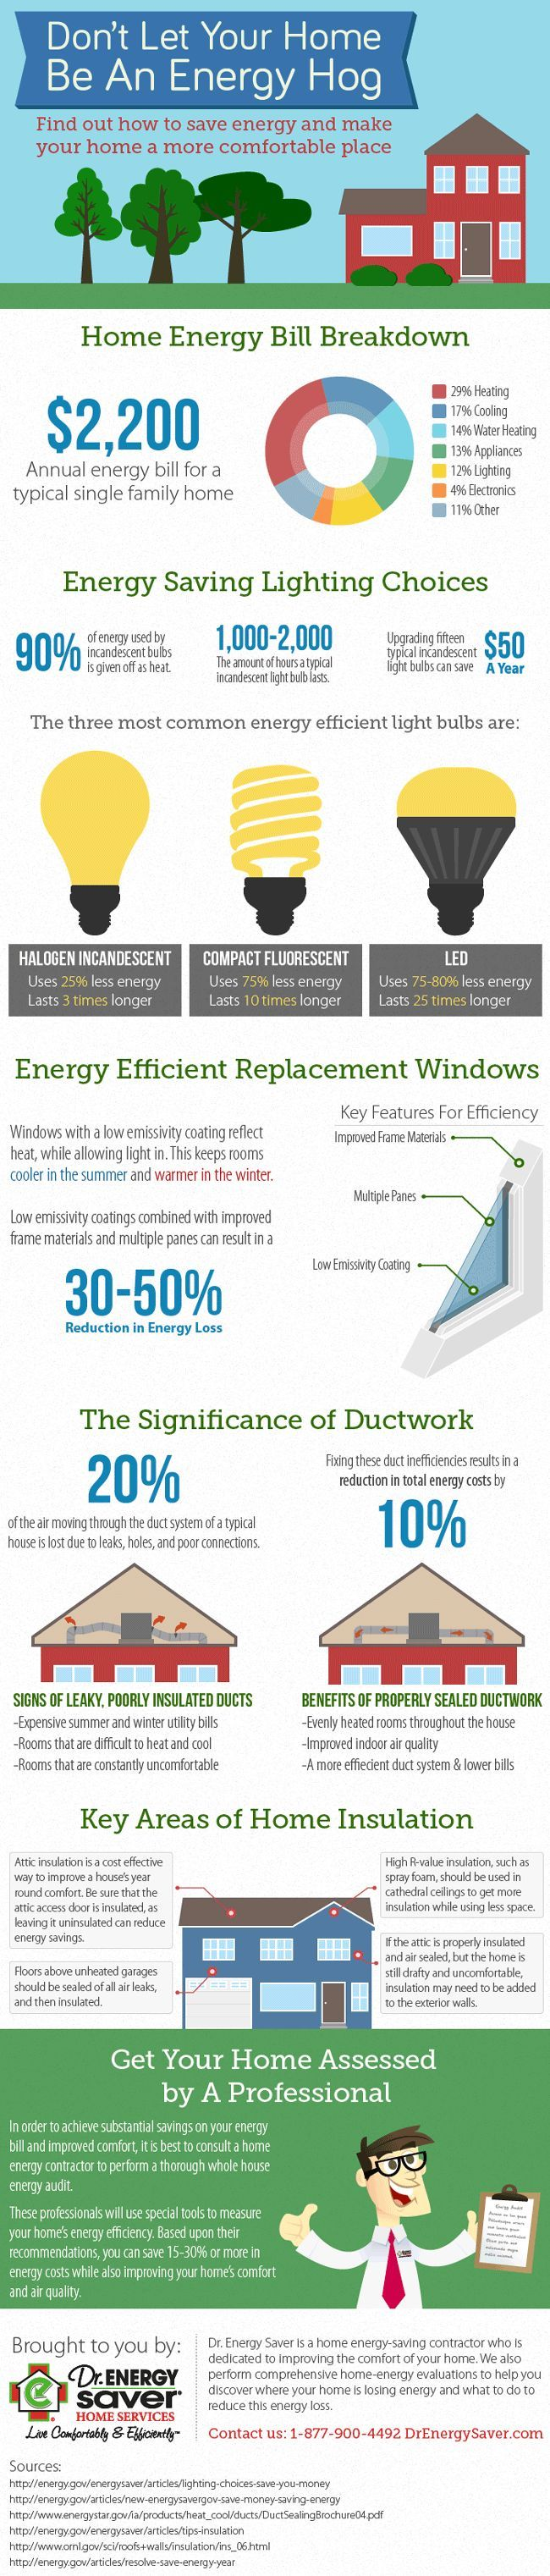 Energy Efficient Home Upgrades In Los Angeles For 0 Down Home Improvement Hub Via Energy Saving In Energy Saving Lighting Save Energy Solar Energy Diy